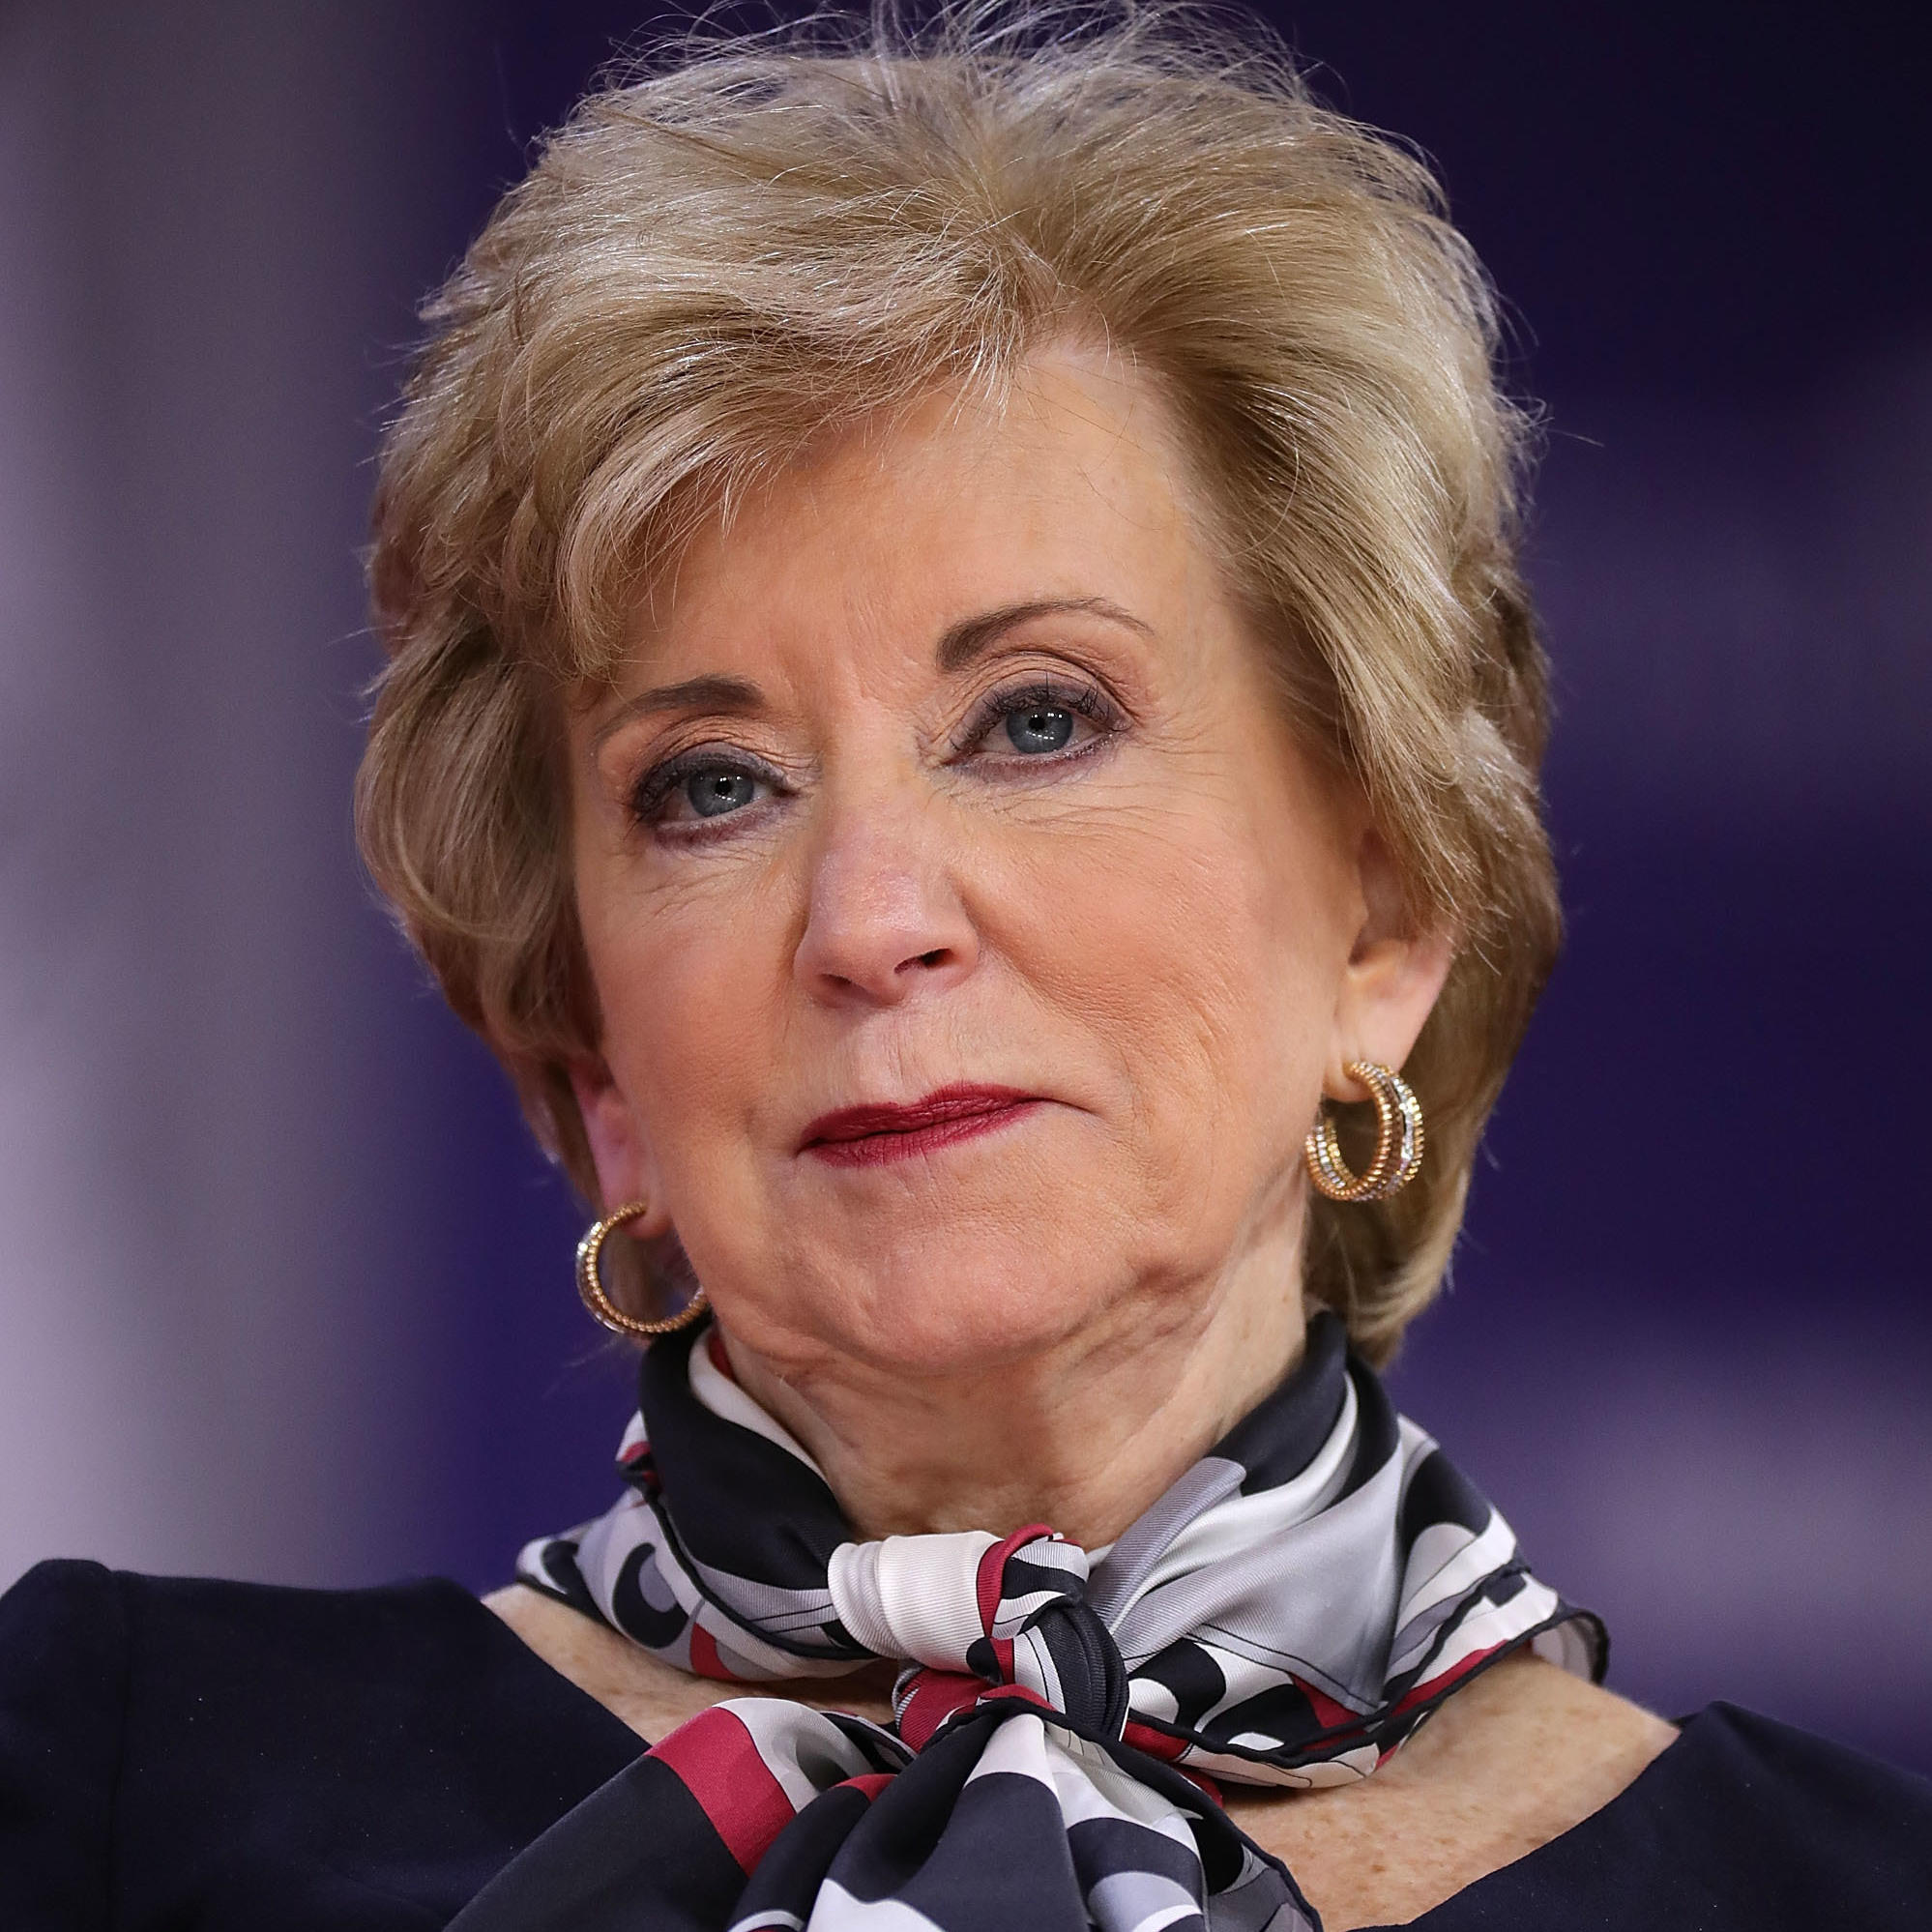 Linda McMahon is leaving Donald Trump's administration